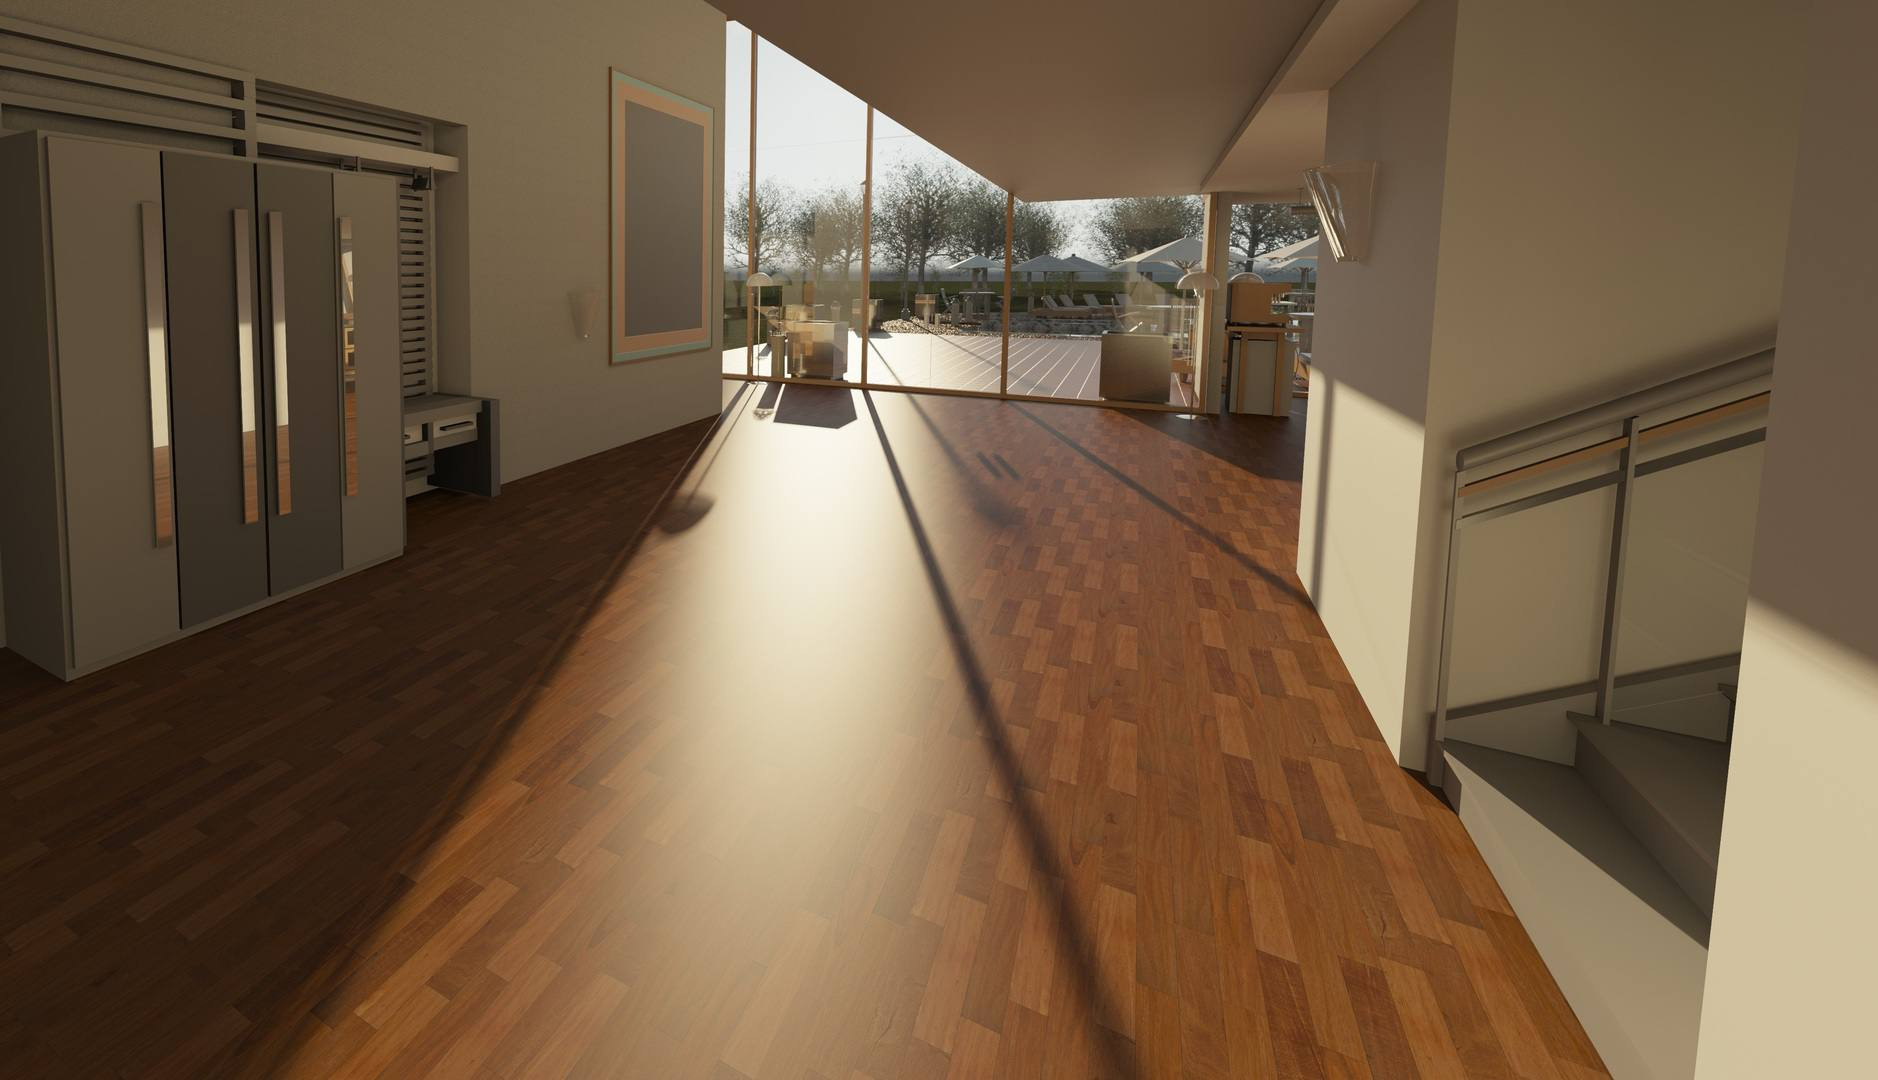 hardwood floor vs tile of common flooring types currently used in renovation and building in architecture wood house floor interior window 917178 pxhere com 5ba27a2cc9e77c00503b27b9